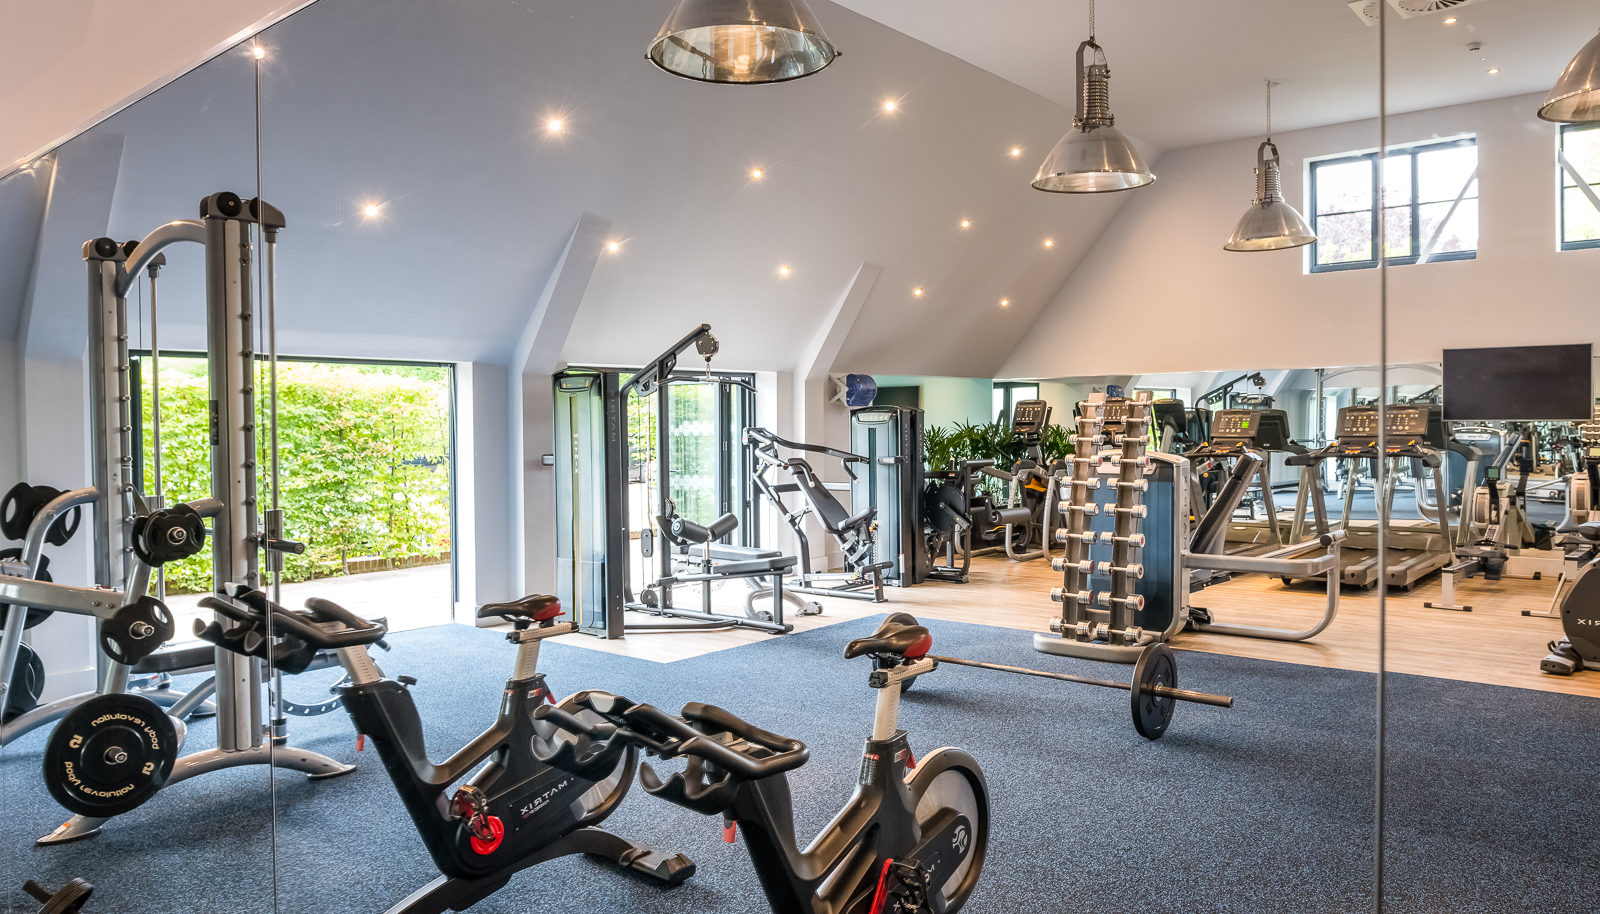 Covid compliant hotel gym with equipment